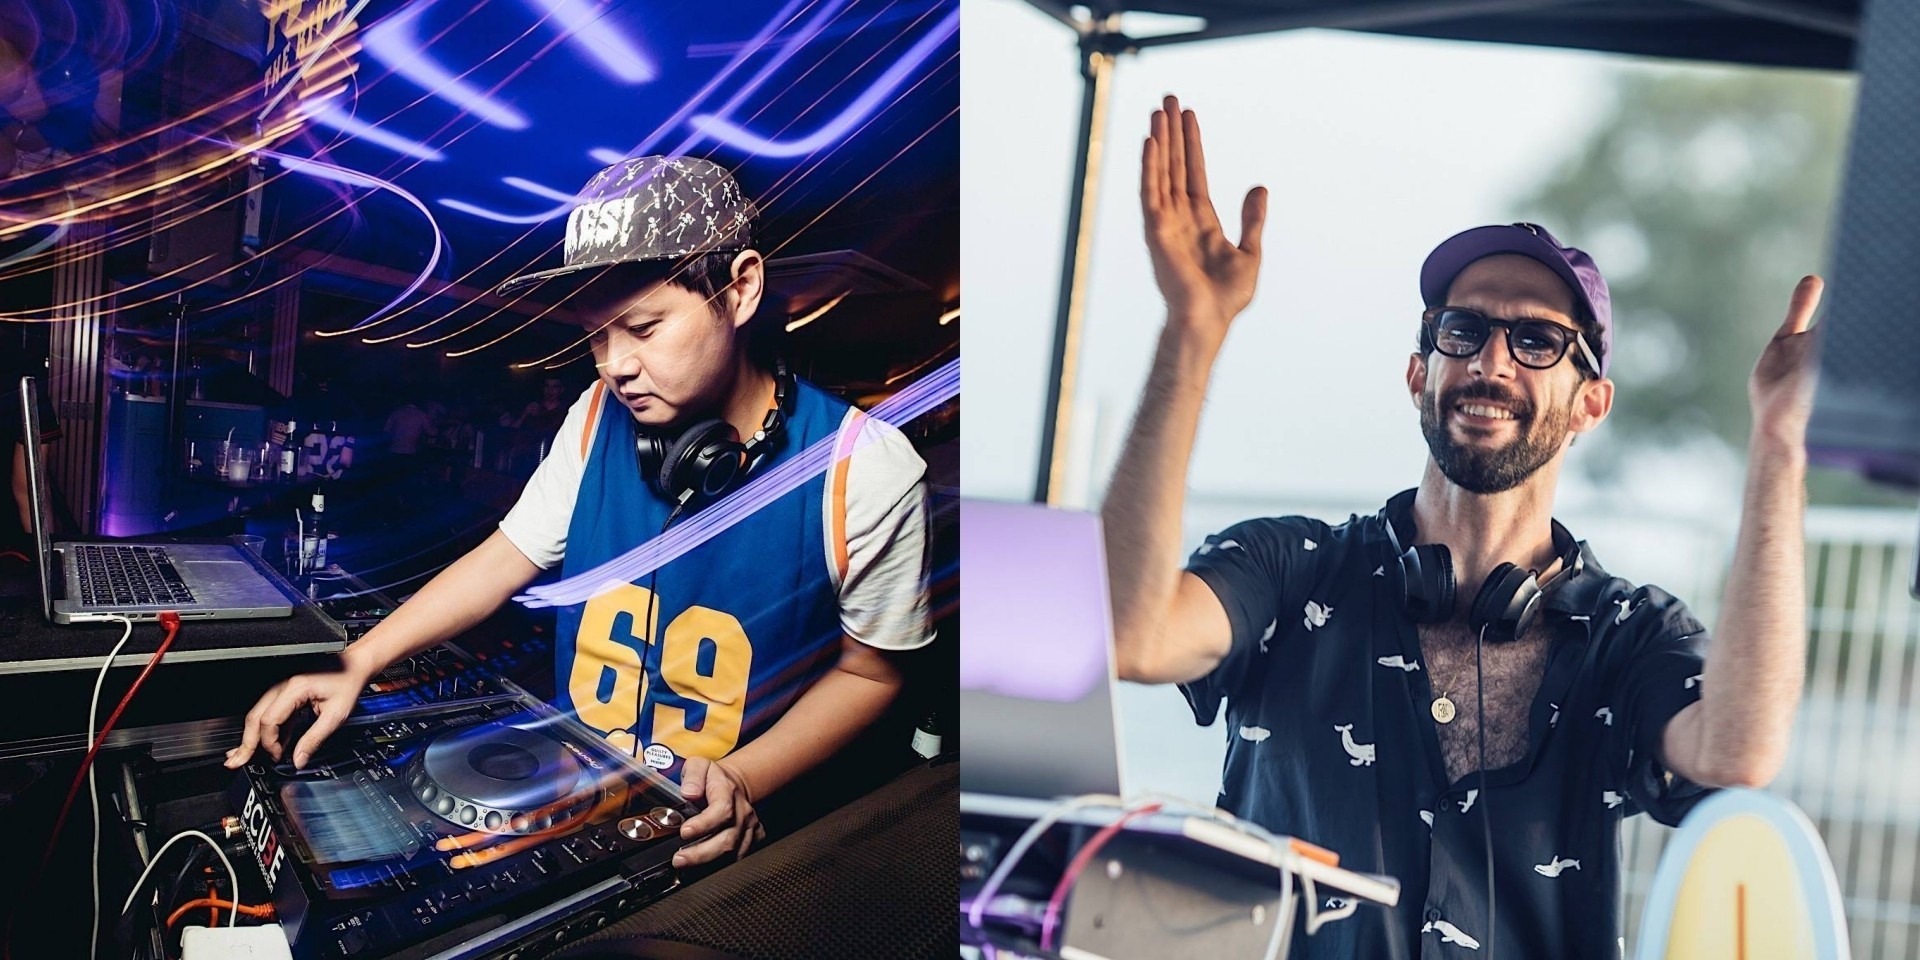 """""""A good dance session is good treatment for your body, mind and soul"""": DJs KiDG and Orio on playing for Jump Start"""